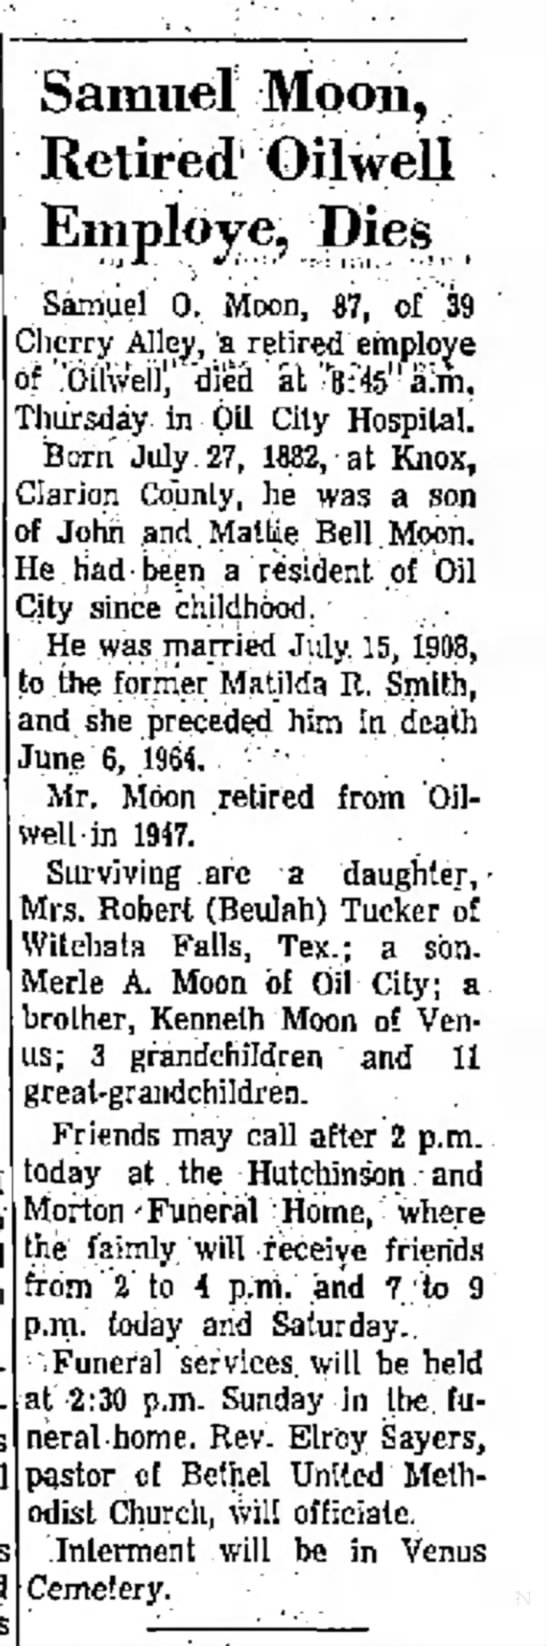 Samuel O Moon obituary April 3 1970 the Oil City Derrick